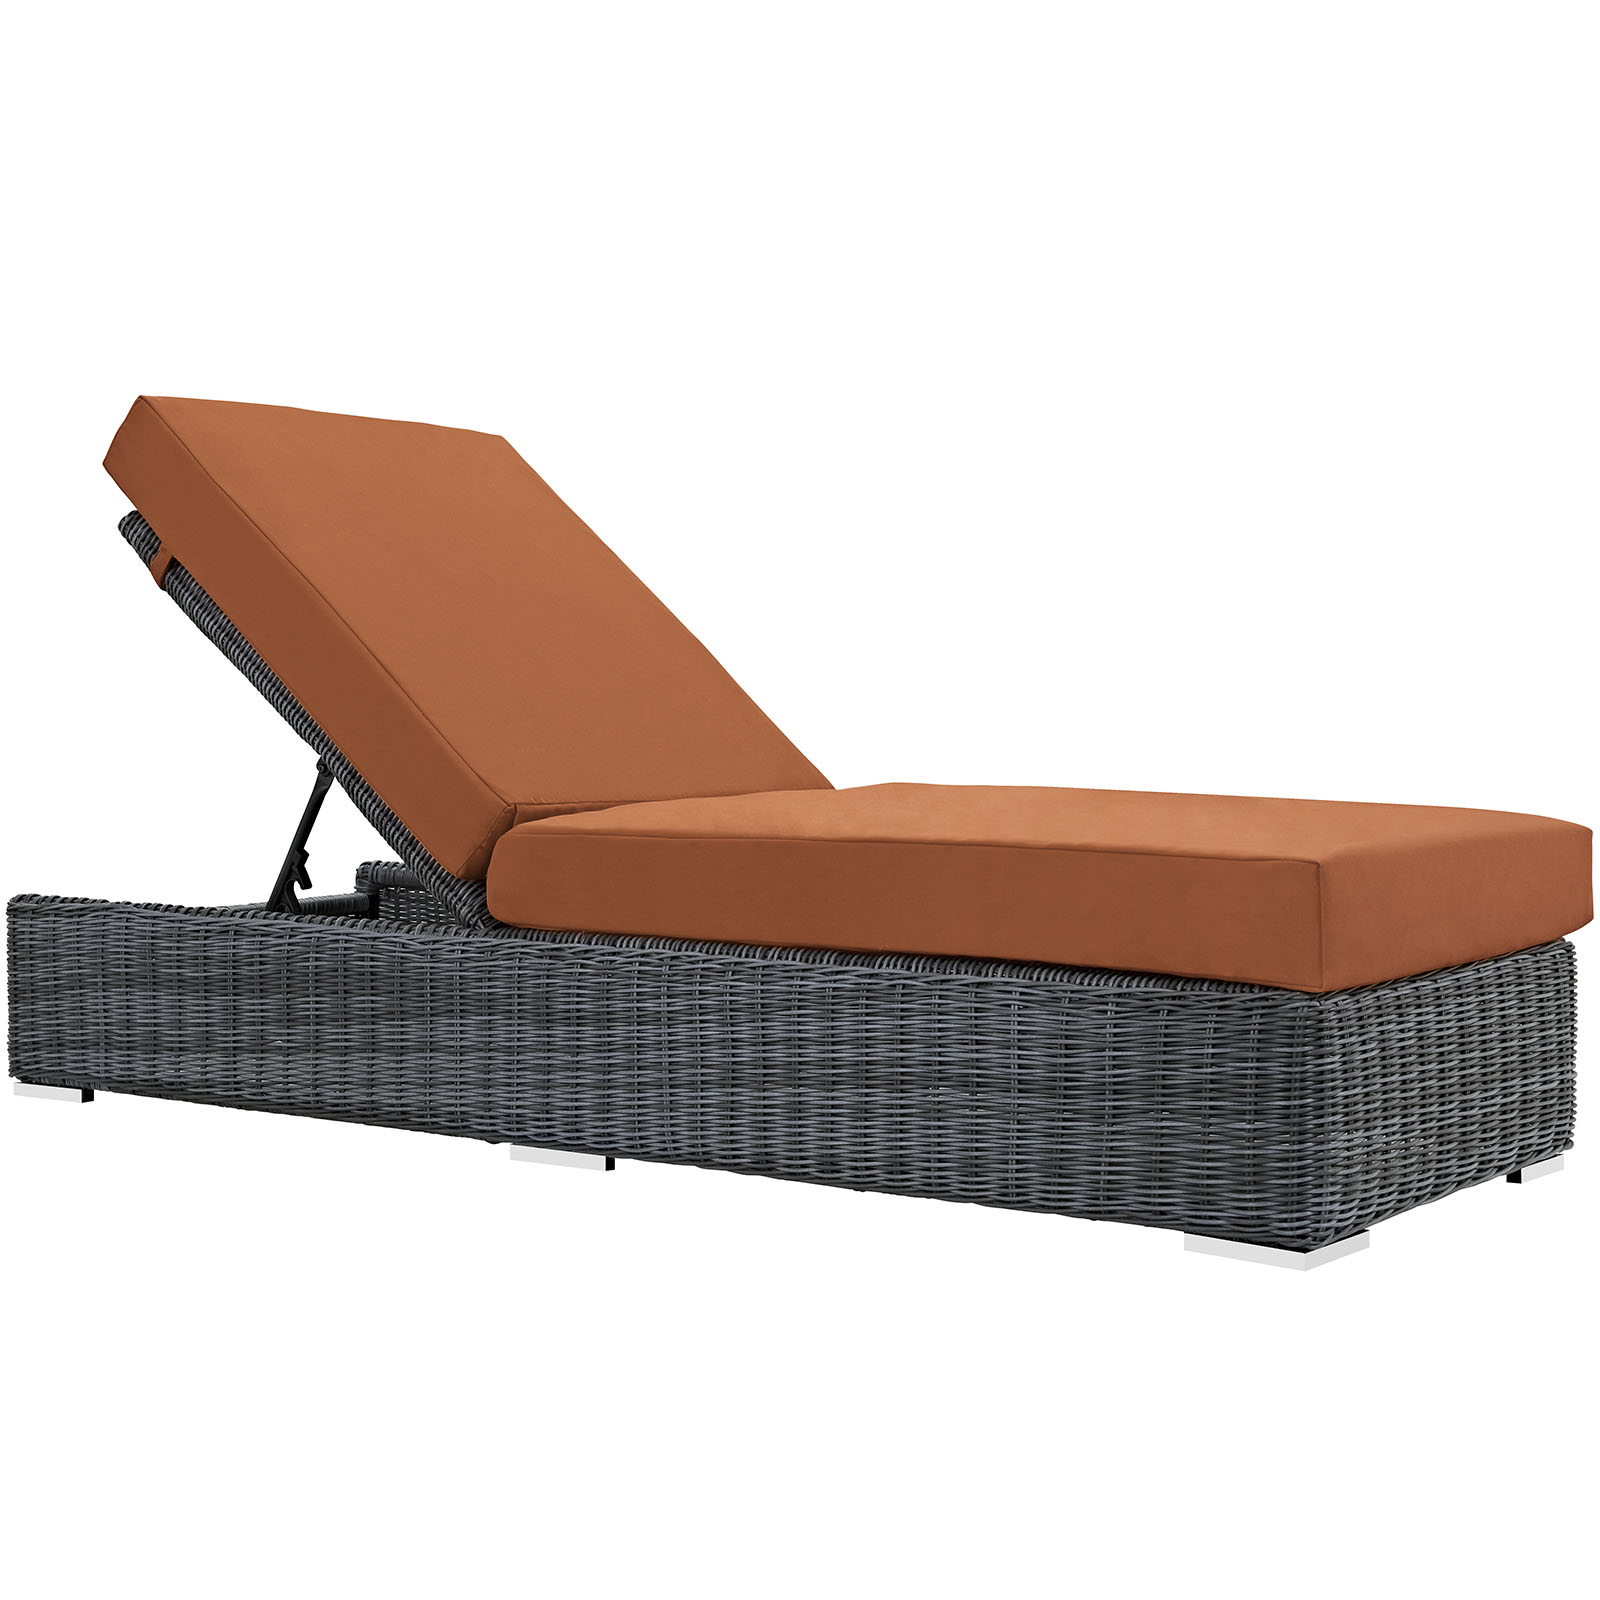 Modern Contemporary Urban Design Outdoor Patio Balcony Chaise Lounge Chair Lounge, Orange, Rattan